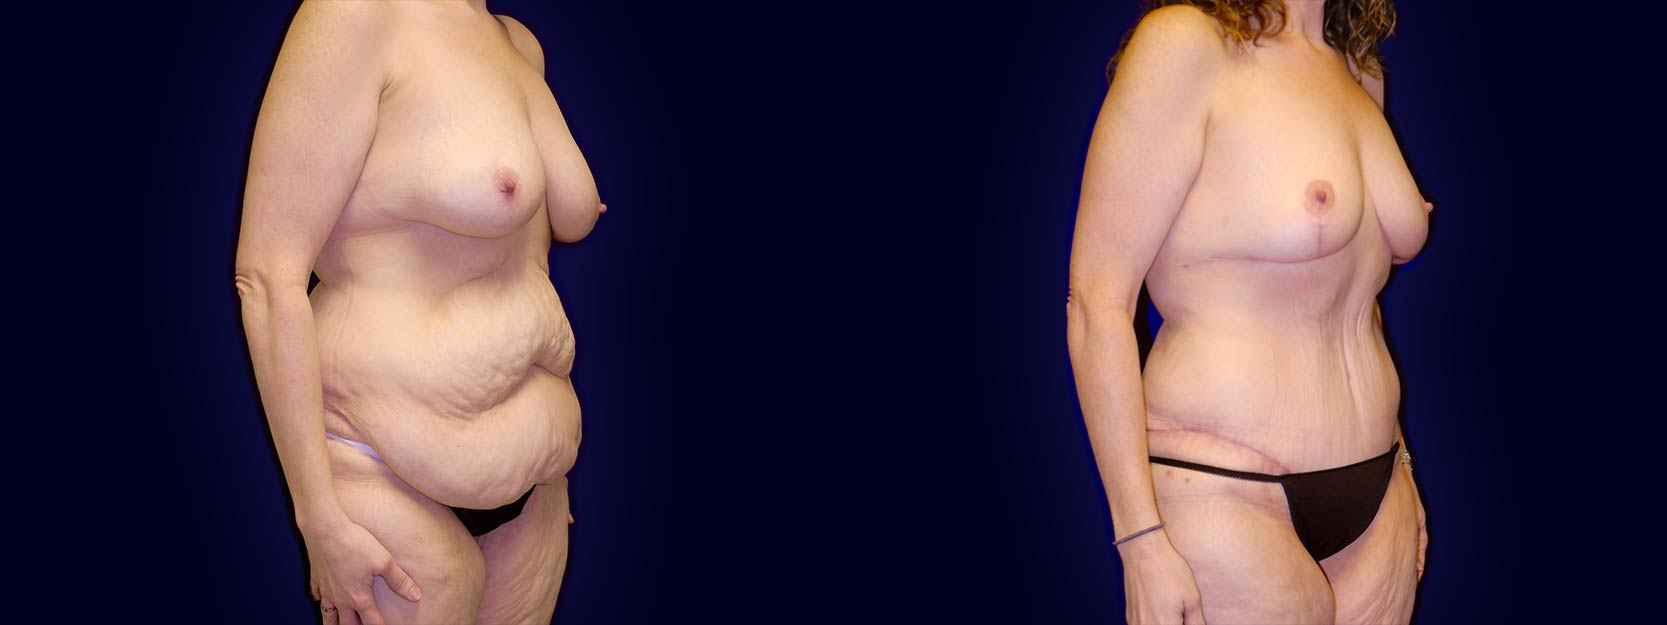 Right 3/4 View - Surgery After Weight Loss - Breast Lift & Tummy Tuck